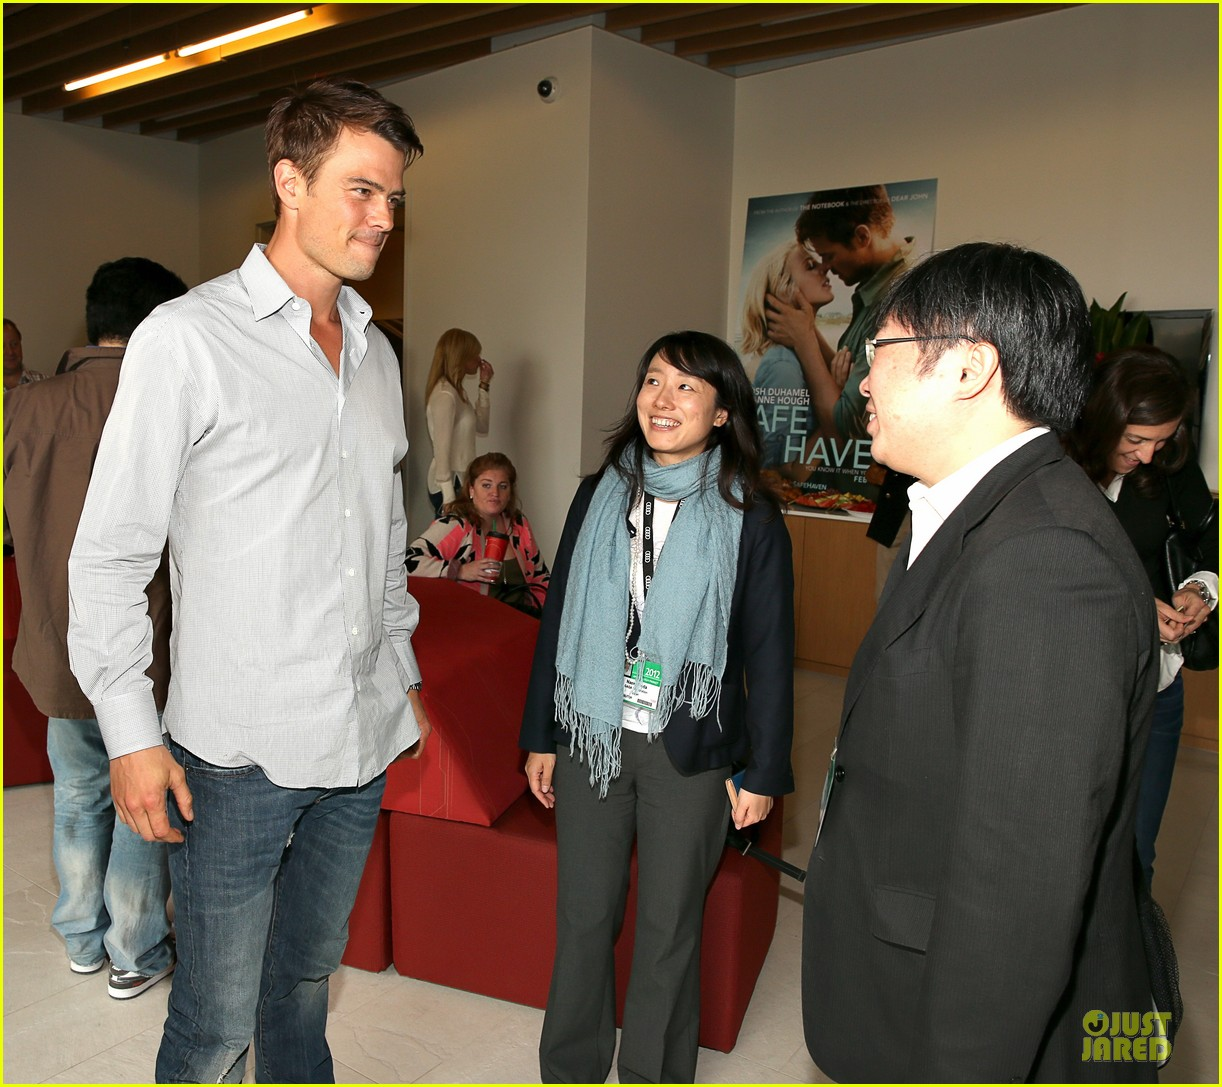 josh duhamel safe haven afi reception 09